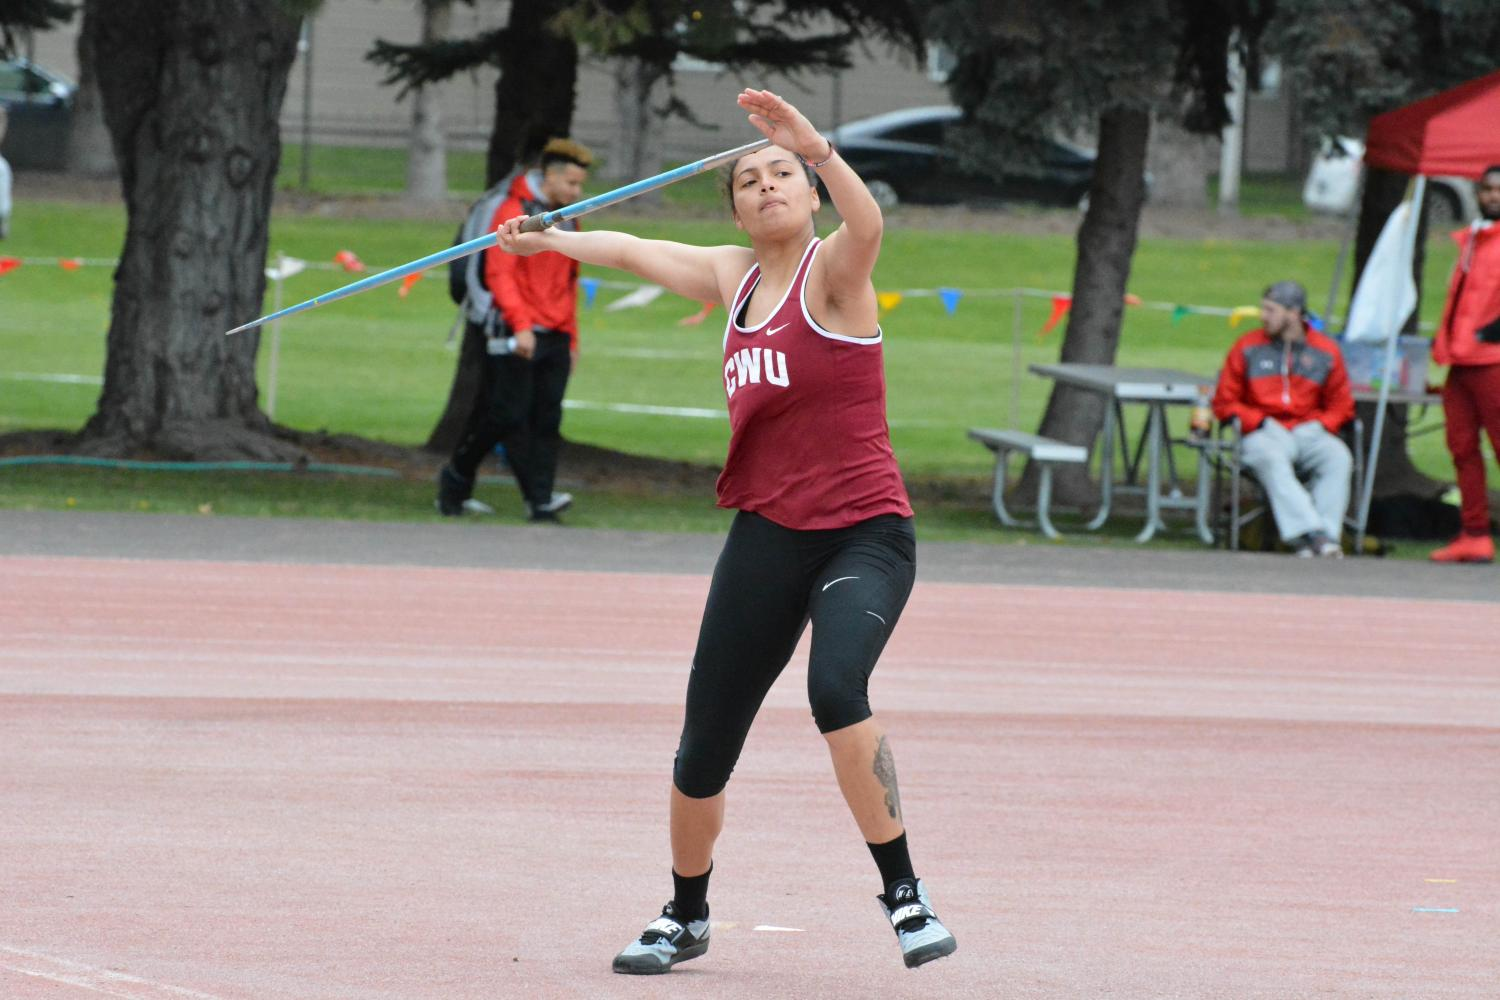 Angelique+Whistocken+throws+the+javelin+at+the+CWU+Final+Qualifier+on+Friday+May+5+at+Tomlinson+Stadium.++